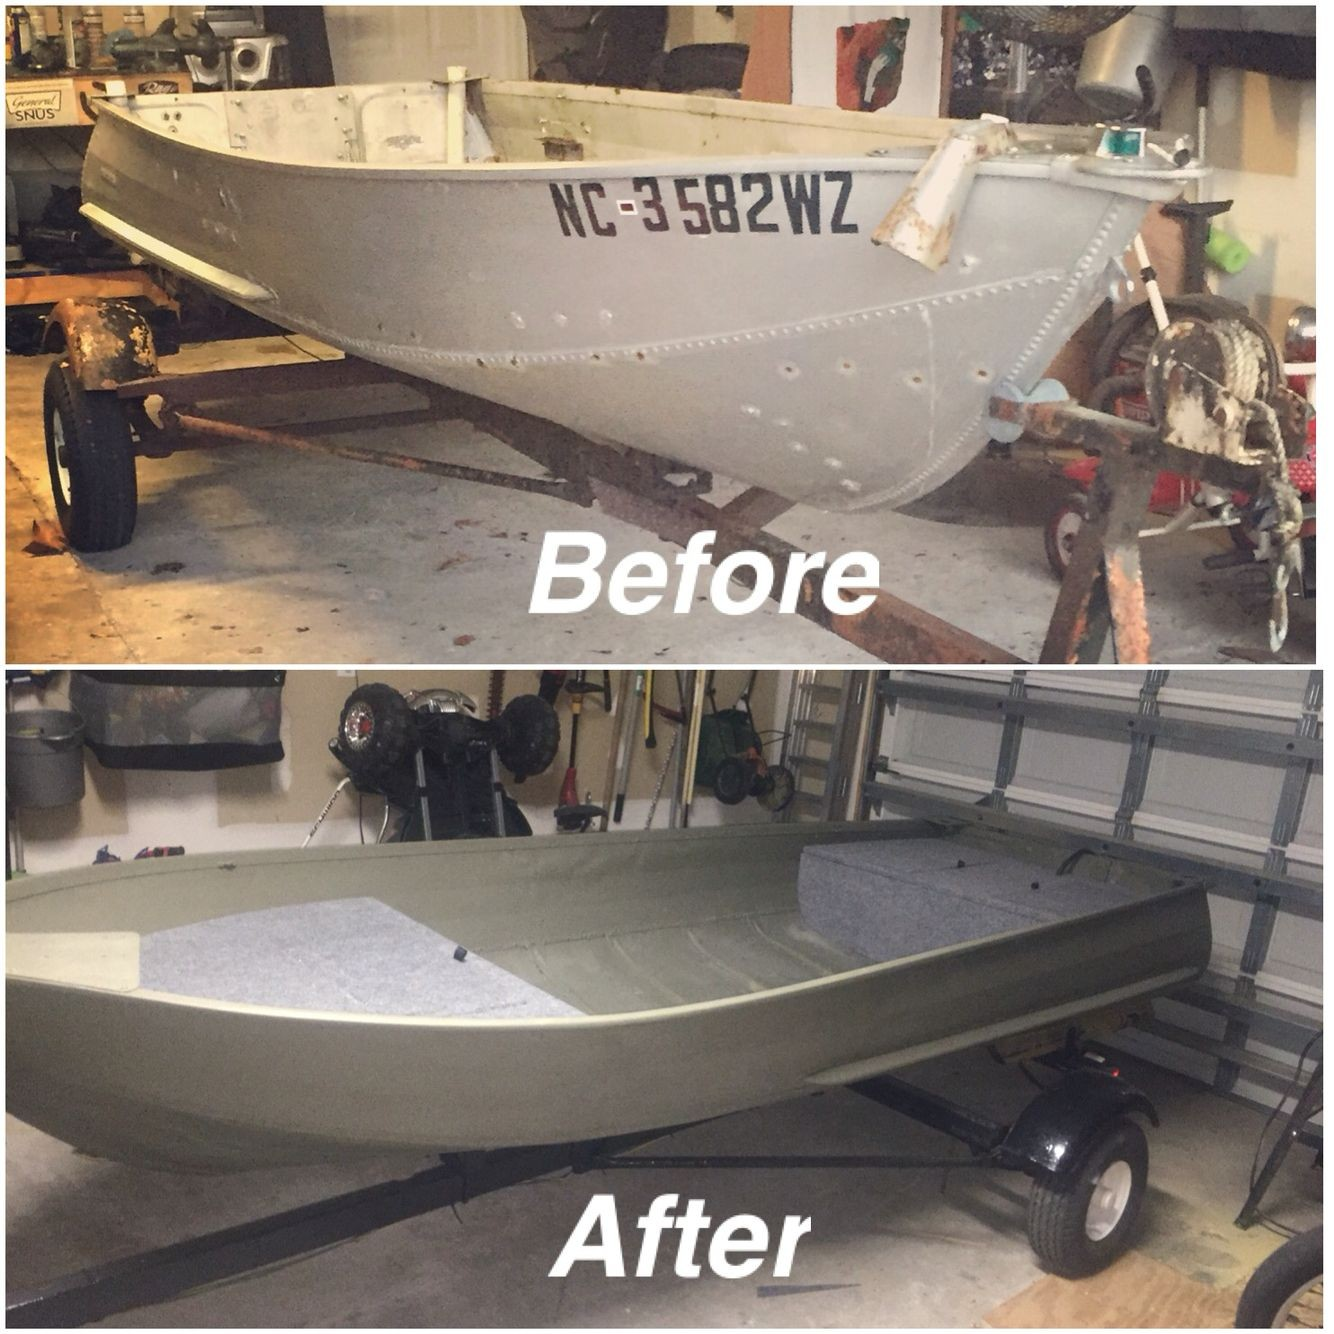 Matt s Jon boat revamped Turned out pretty damn good